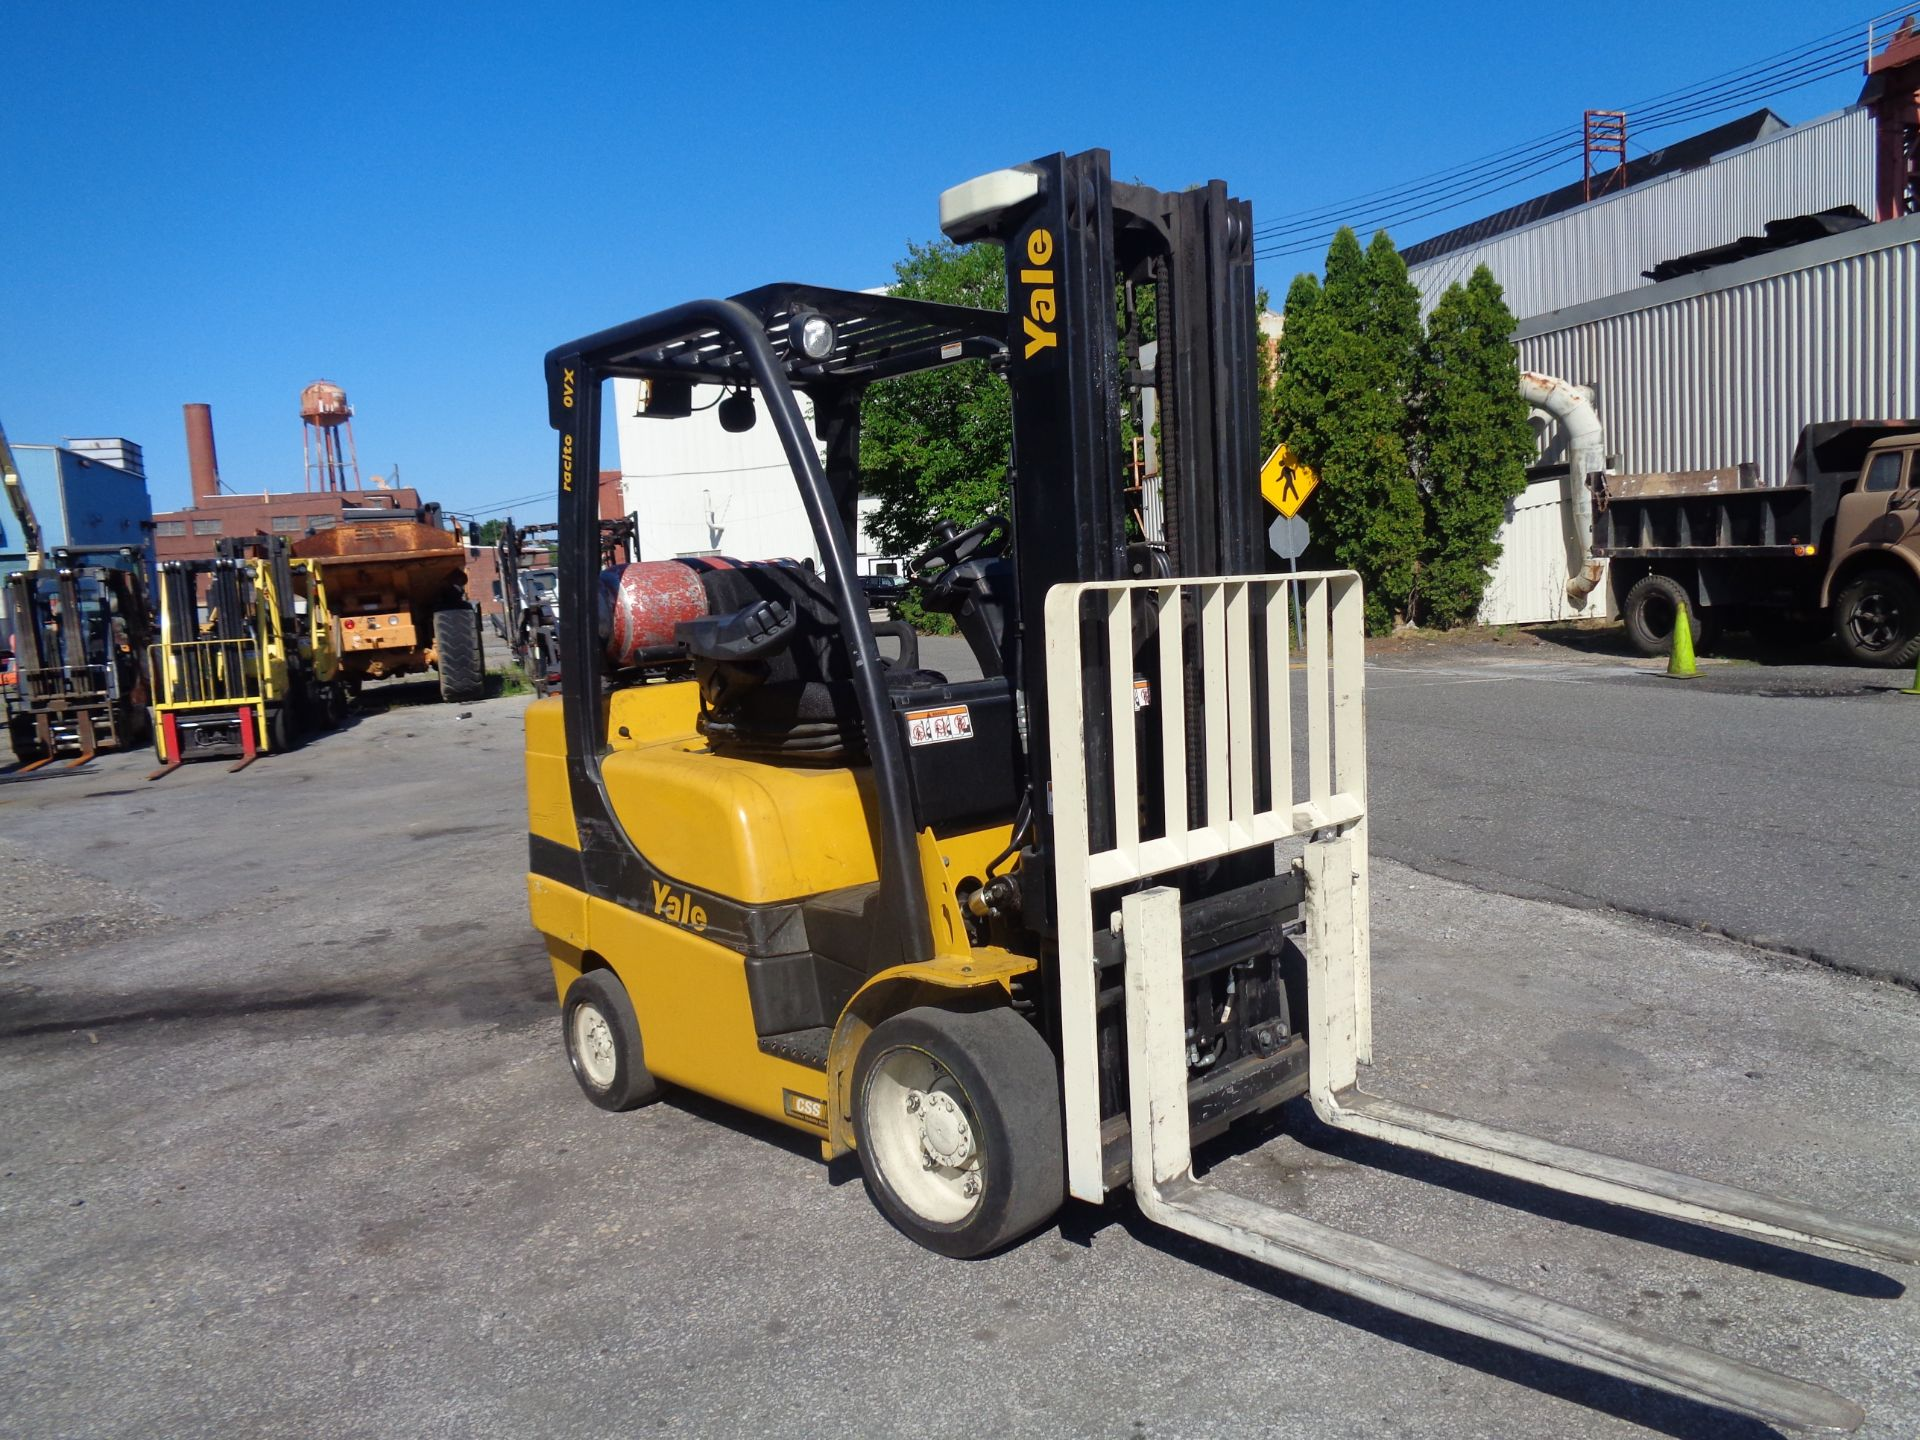 2014 Yale GLC070VXNGSE088 7,000 lbs Forklift - Image 3 of 12